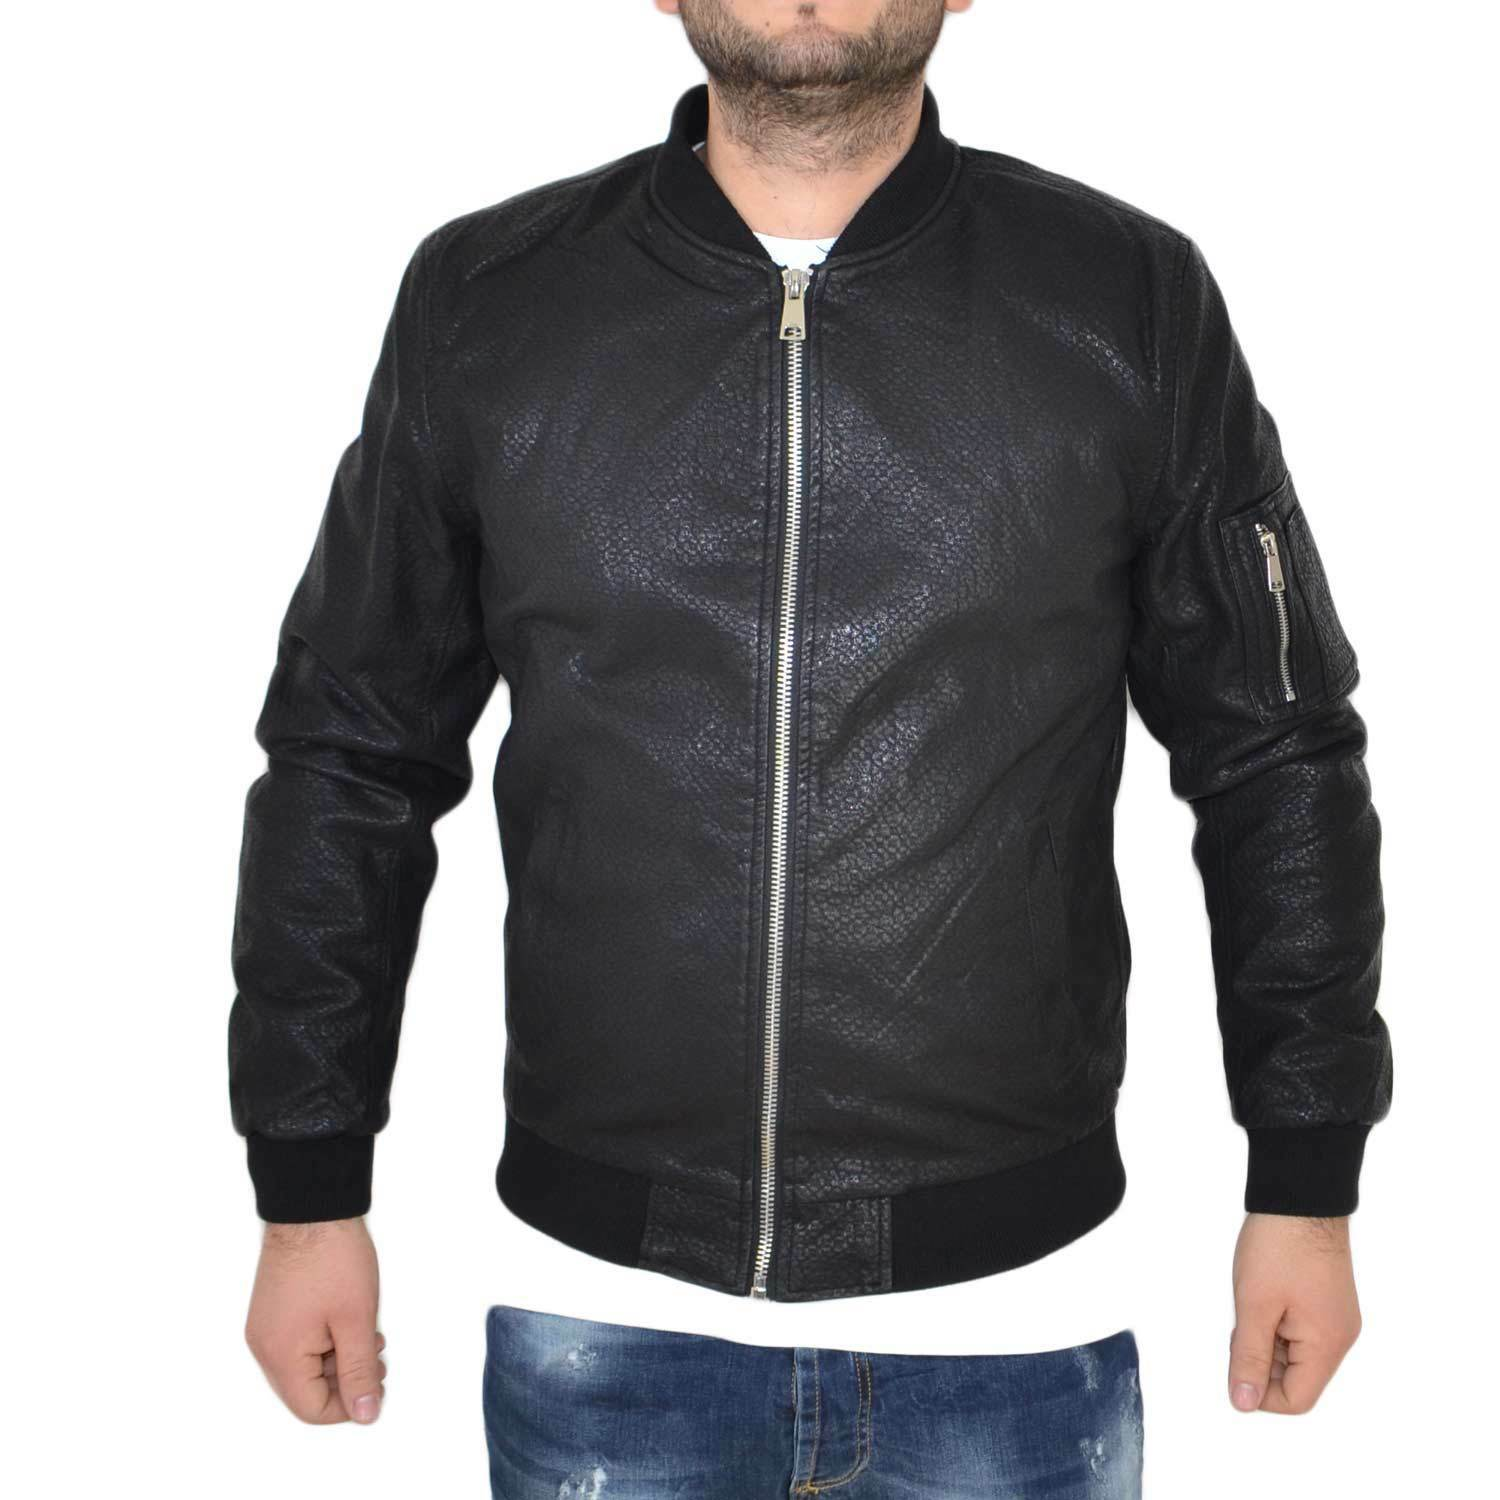 Giubbino in pelle art.2245 black con zip made in italy moda comfort